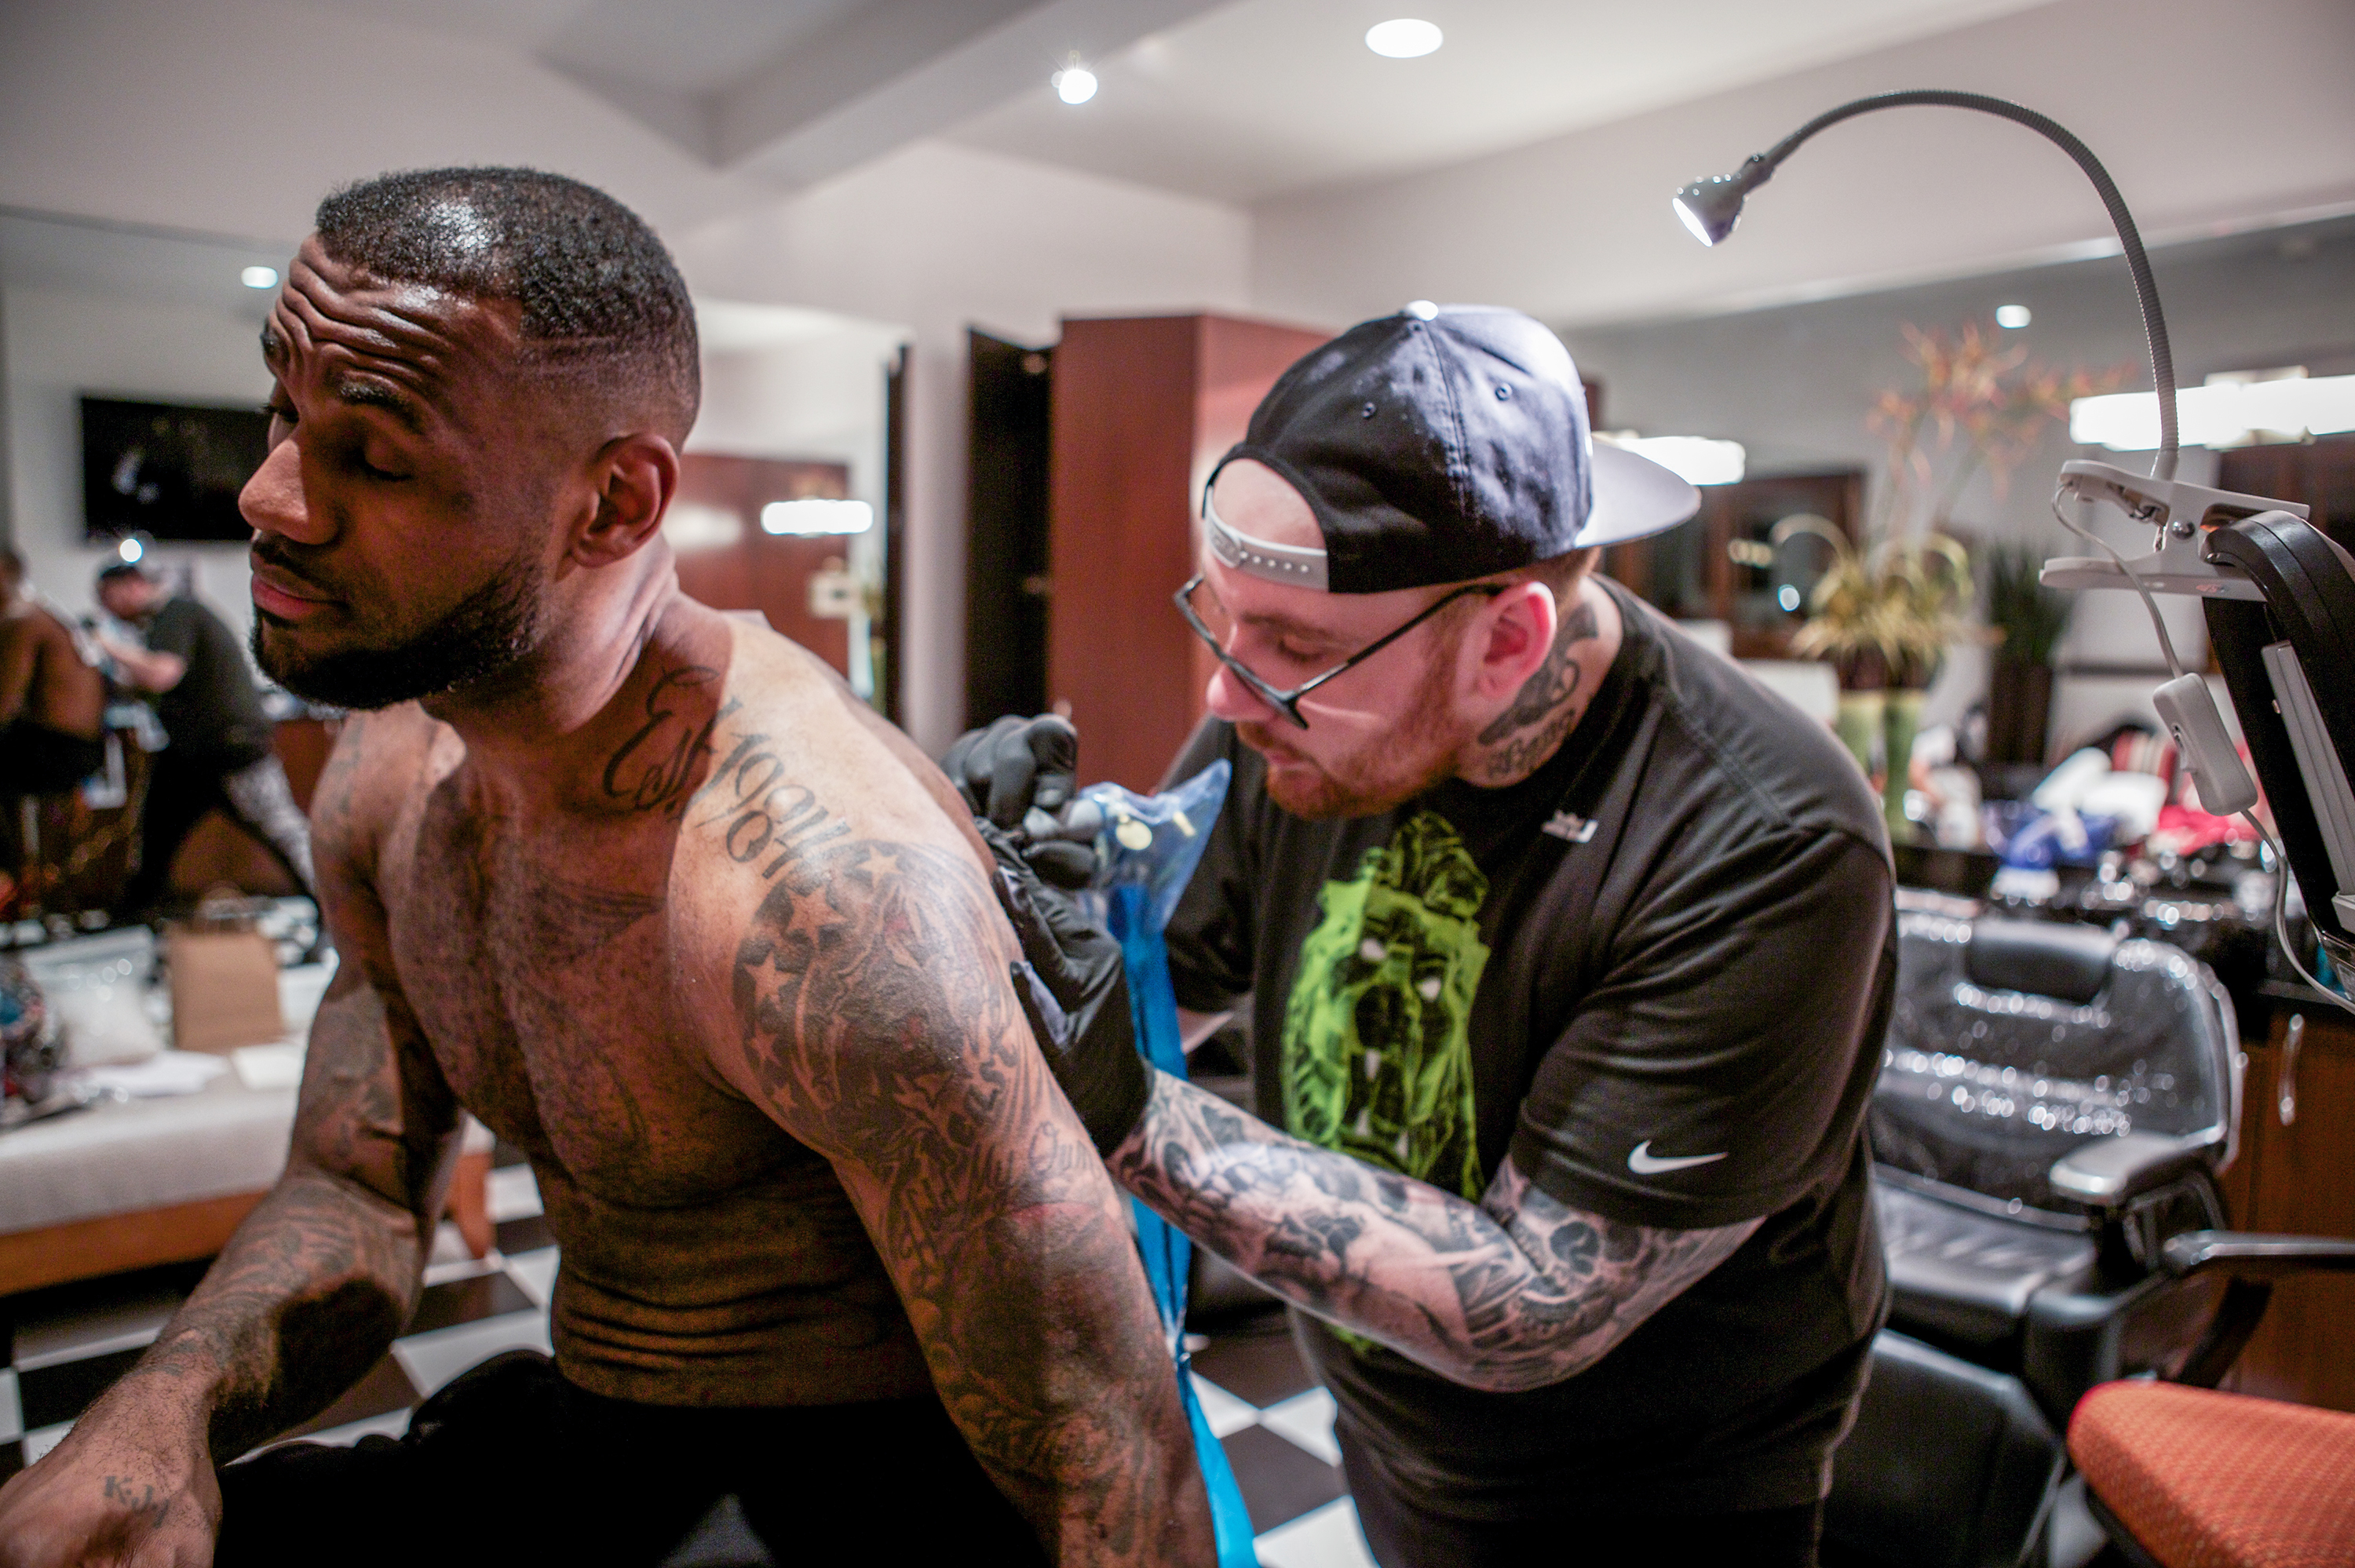 tattoo artist Knowing how much your tattoo will cost will help with planning for your dream tattoo many factors determine the price charged by the tattoo artist: skill, reputation, artistic ability, location on the body, size of the tattoo, and complexity.